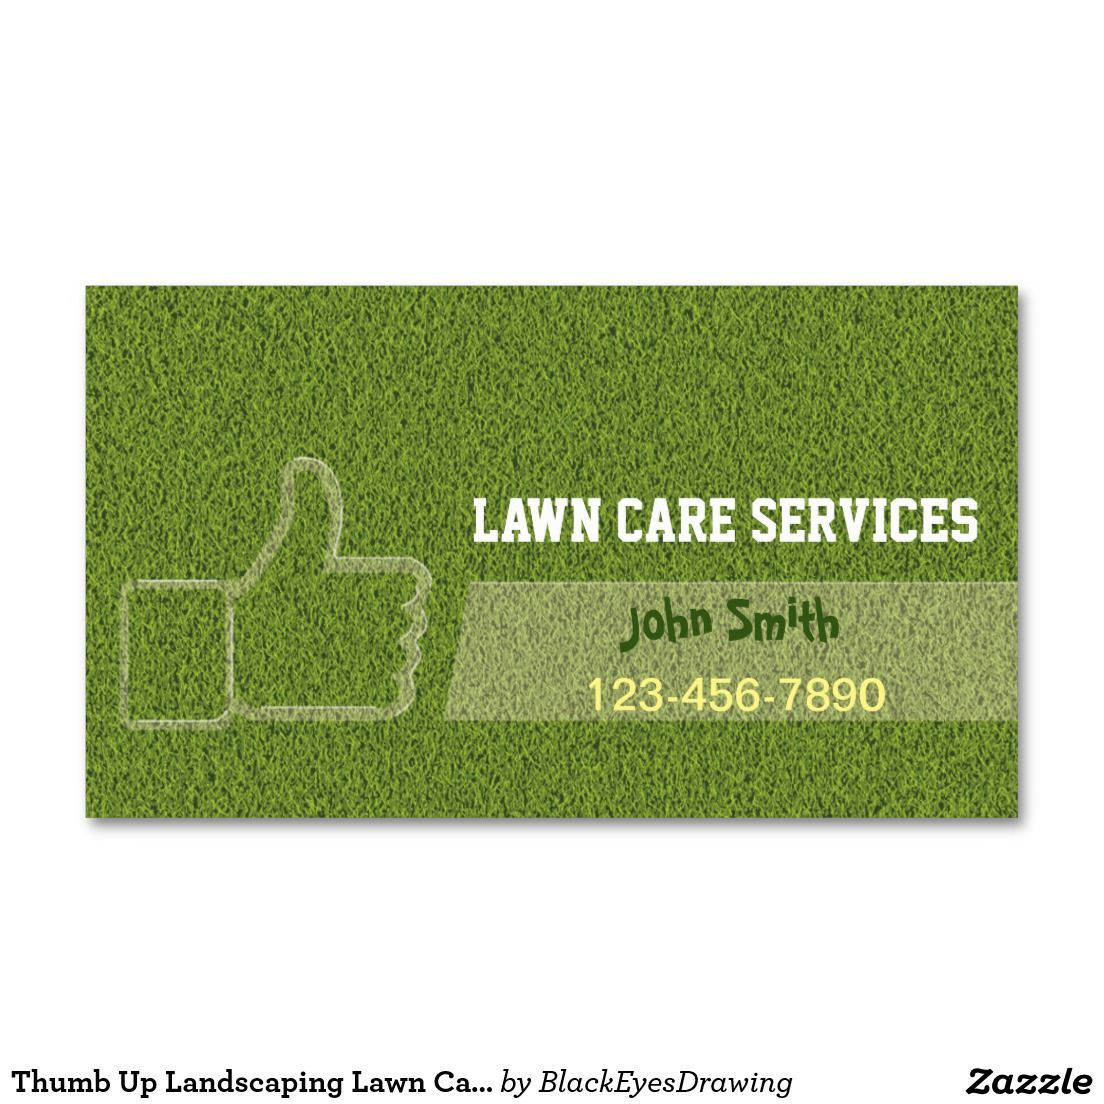 Thumb Up Landscaping Lawn Care Gardening Business Card | Business ...